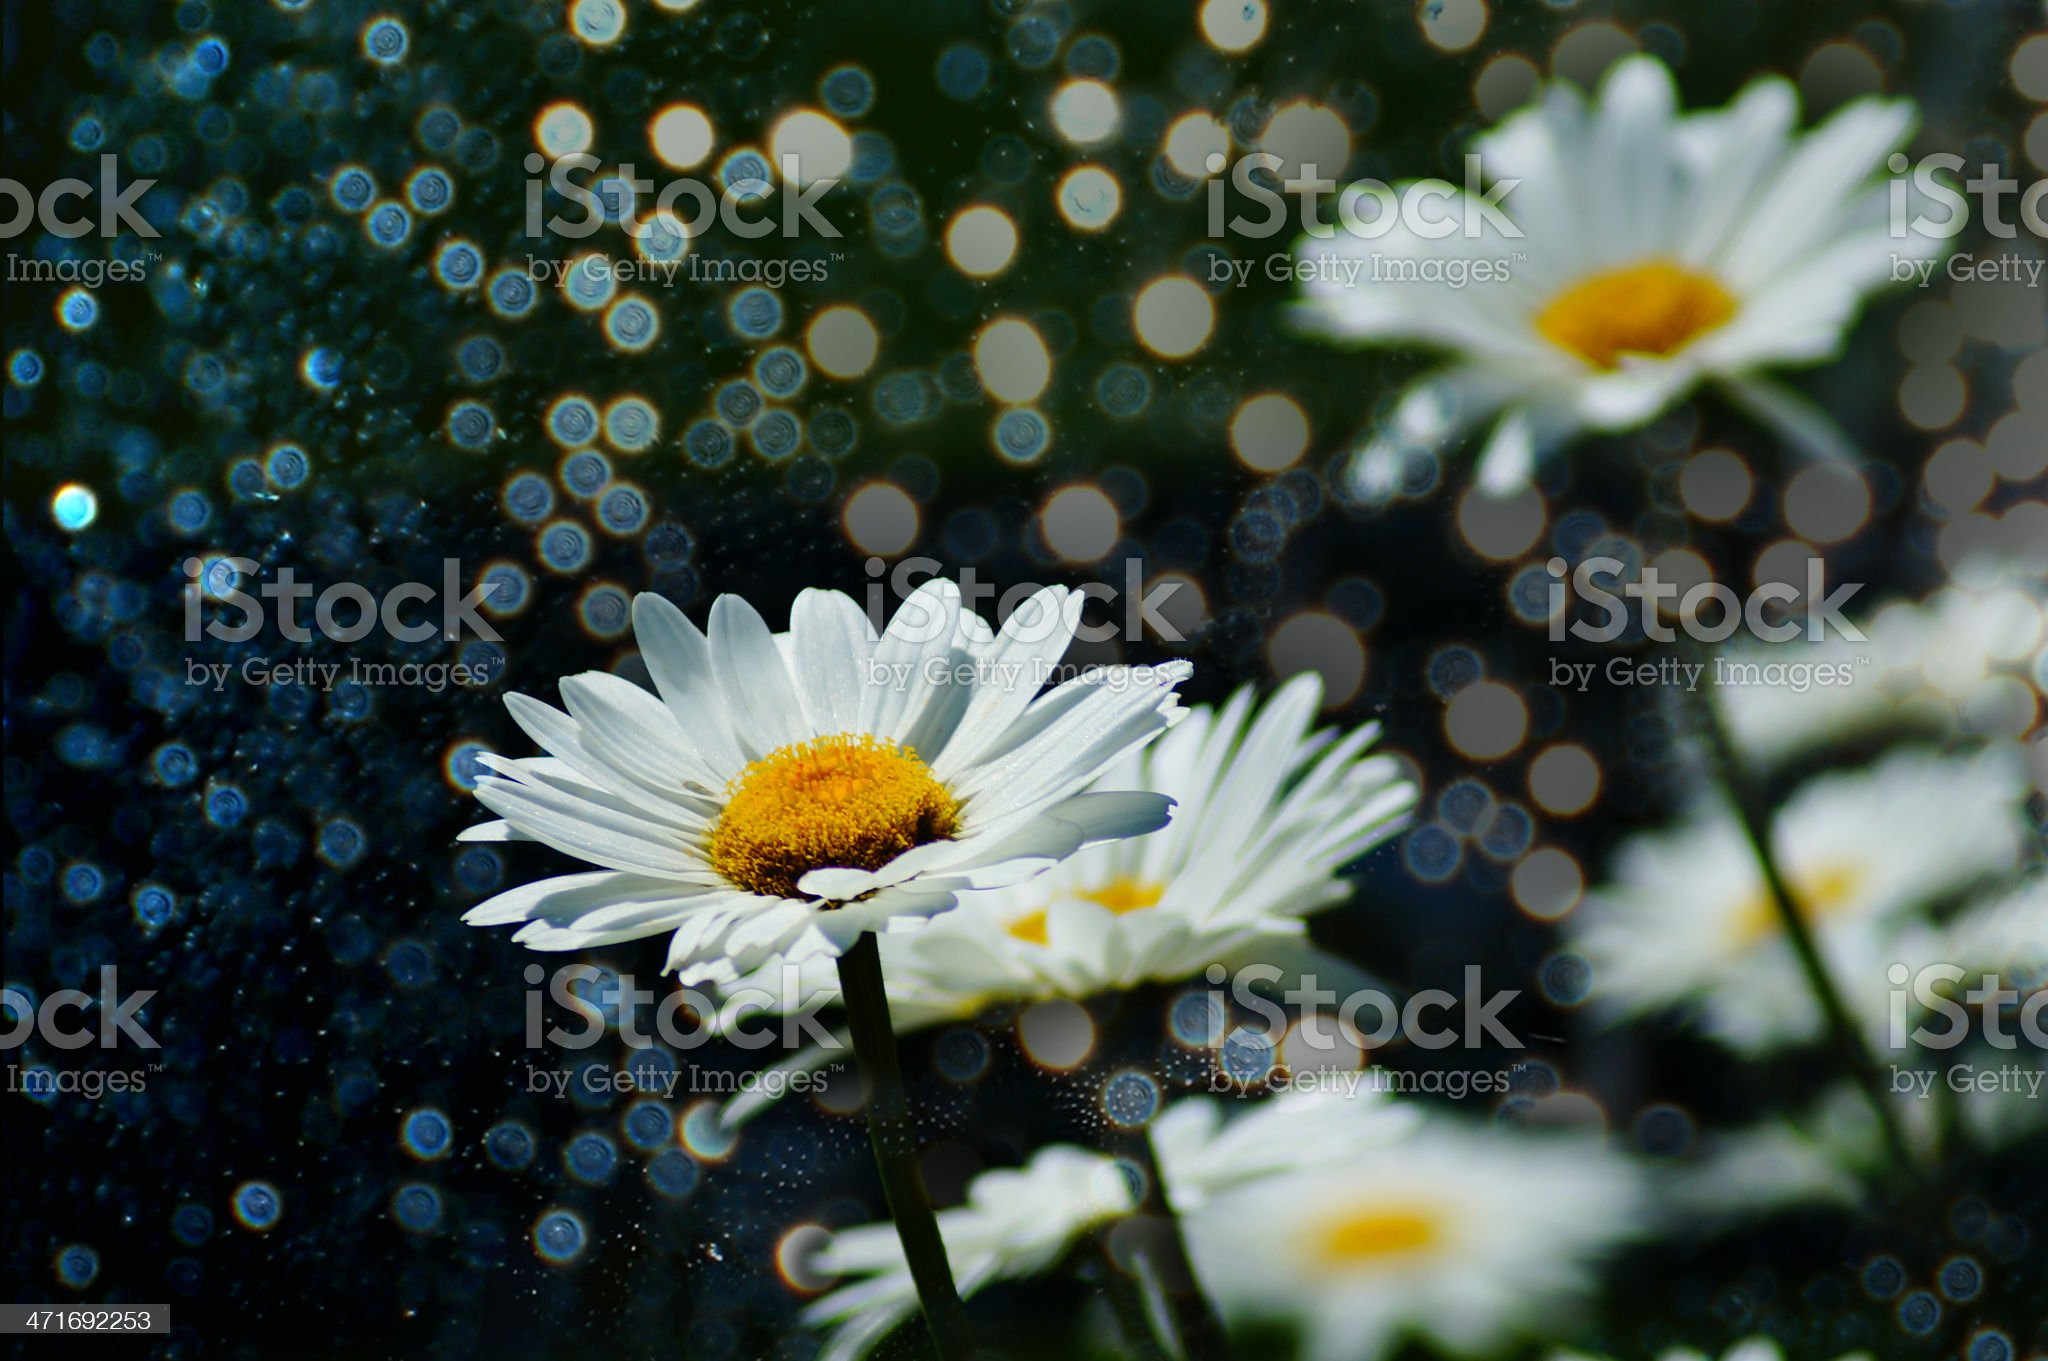 Glowing sparkle background with daisies royalty-free stock photo